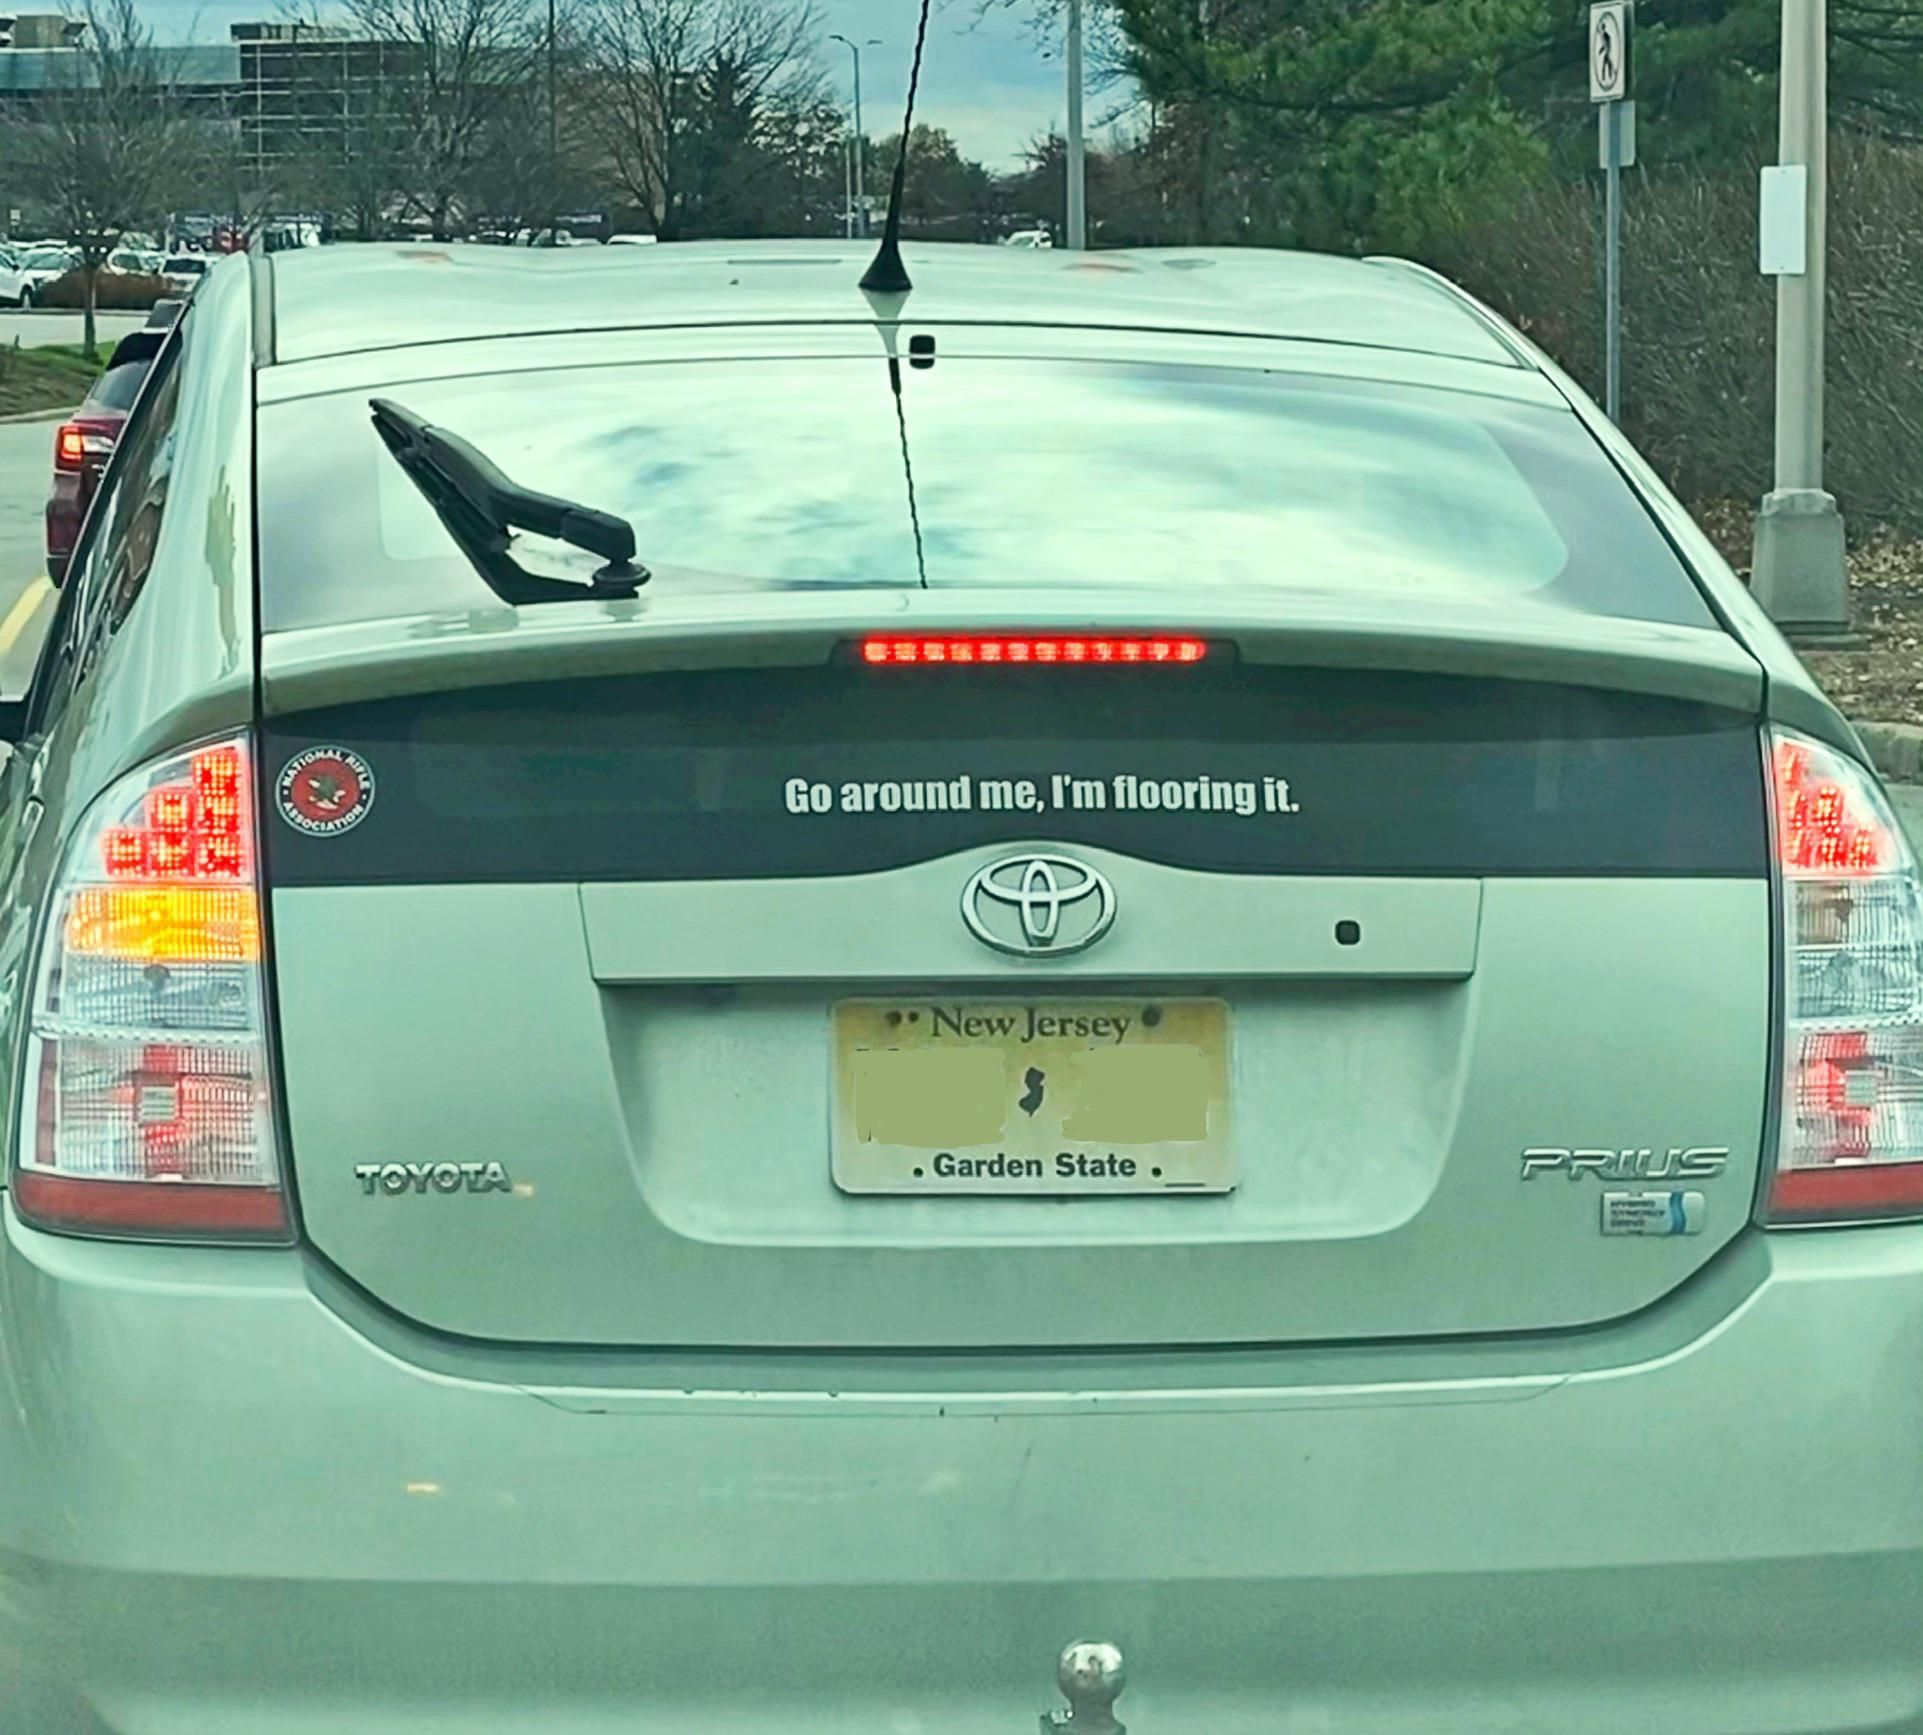 This Bumper Sticker On A Prius Https Ift Tt 37it6n7 Prius Jokes Funny Pictures Funny [ 1735 x 1923 Pixel ]